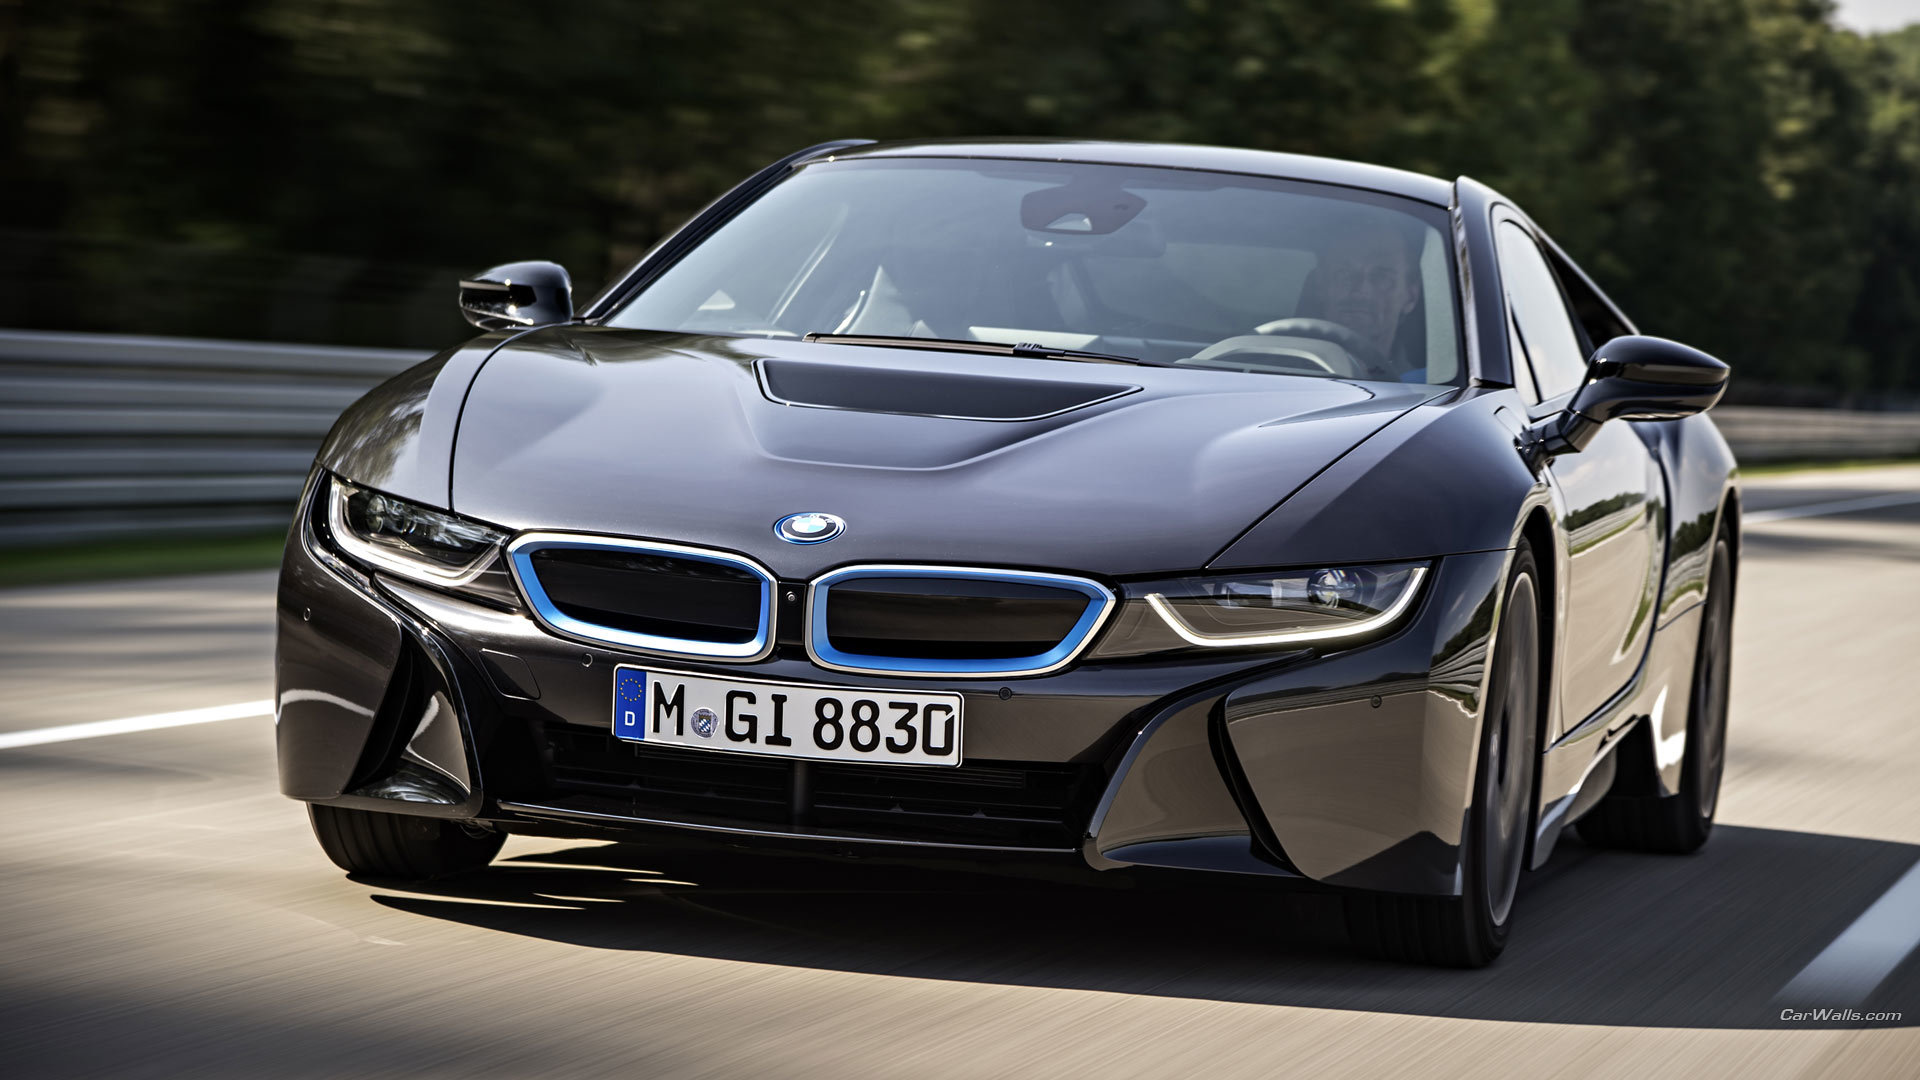 Best Bmw I8 Wallpaper Id 126936 For High Resolution Full Hd 1080p Desktop